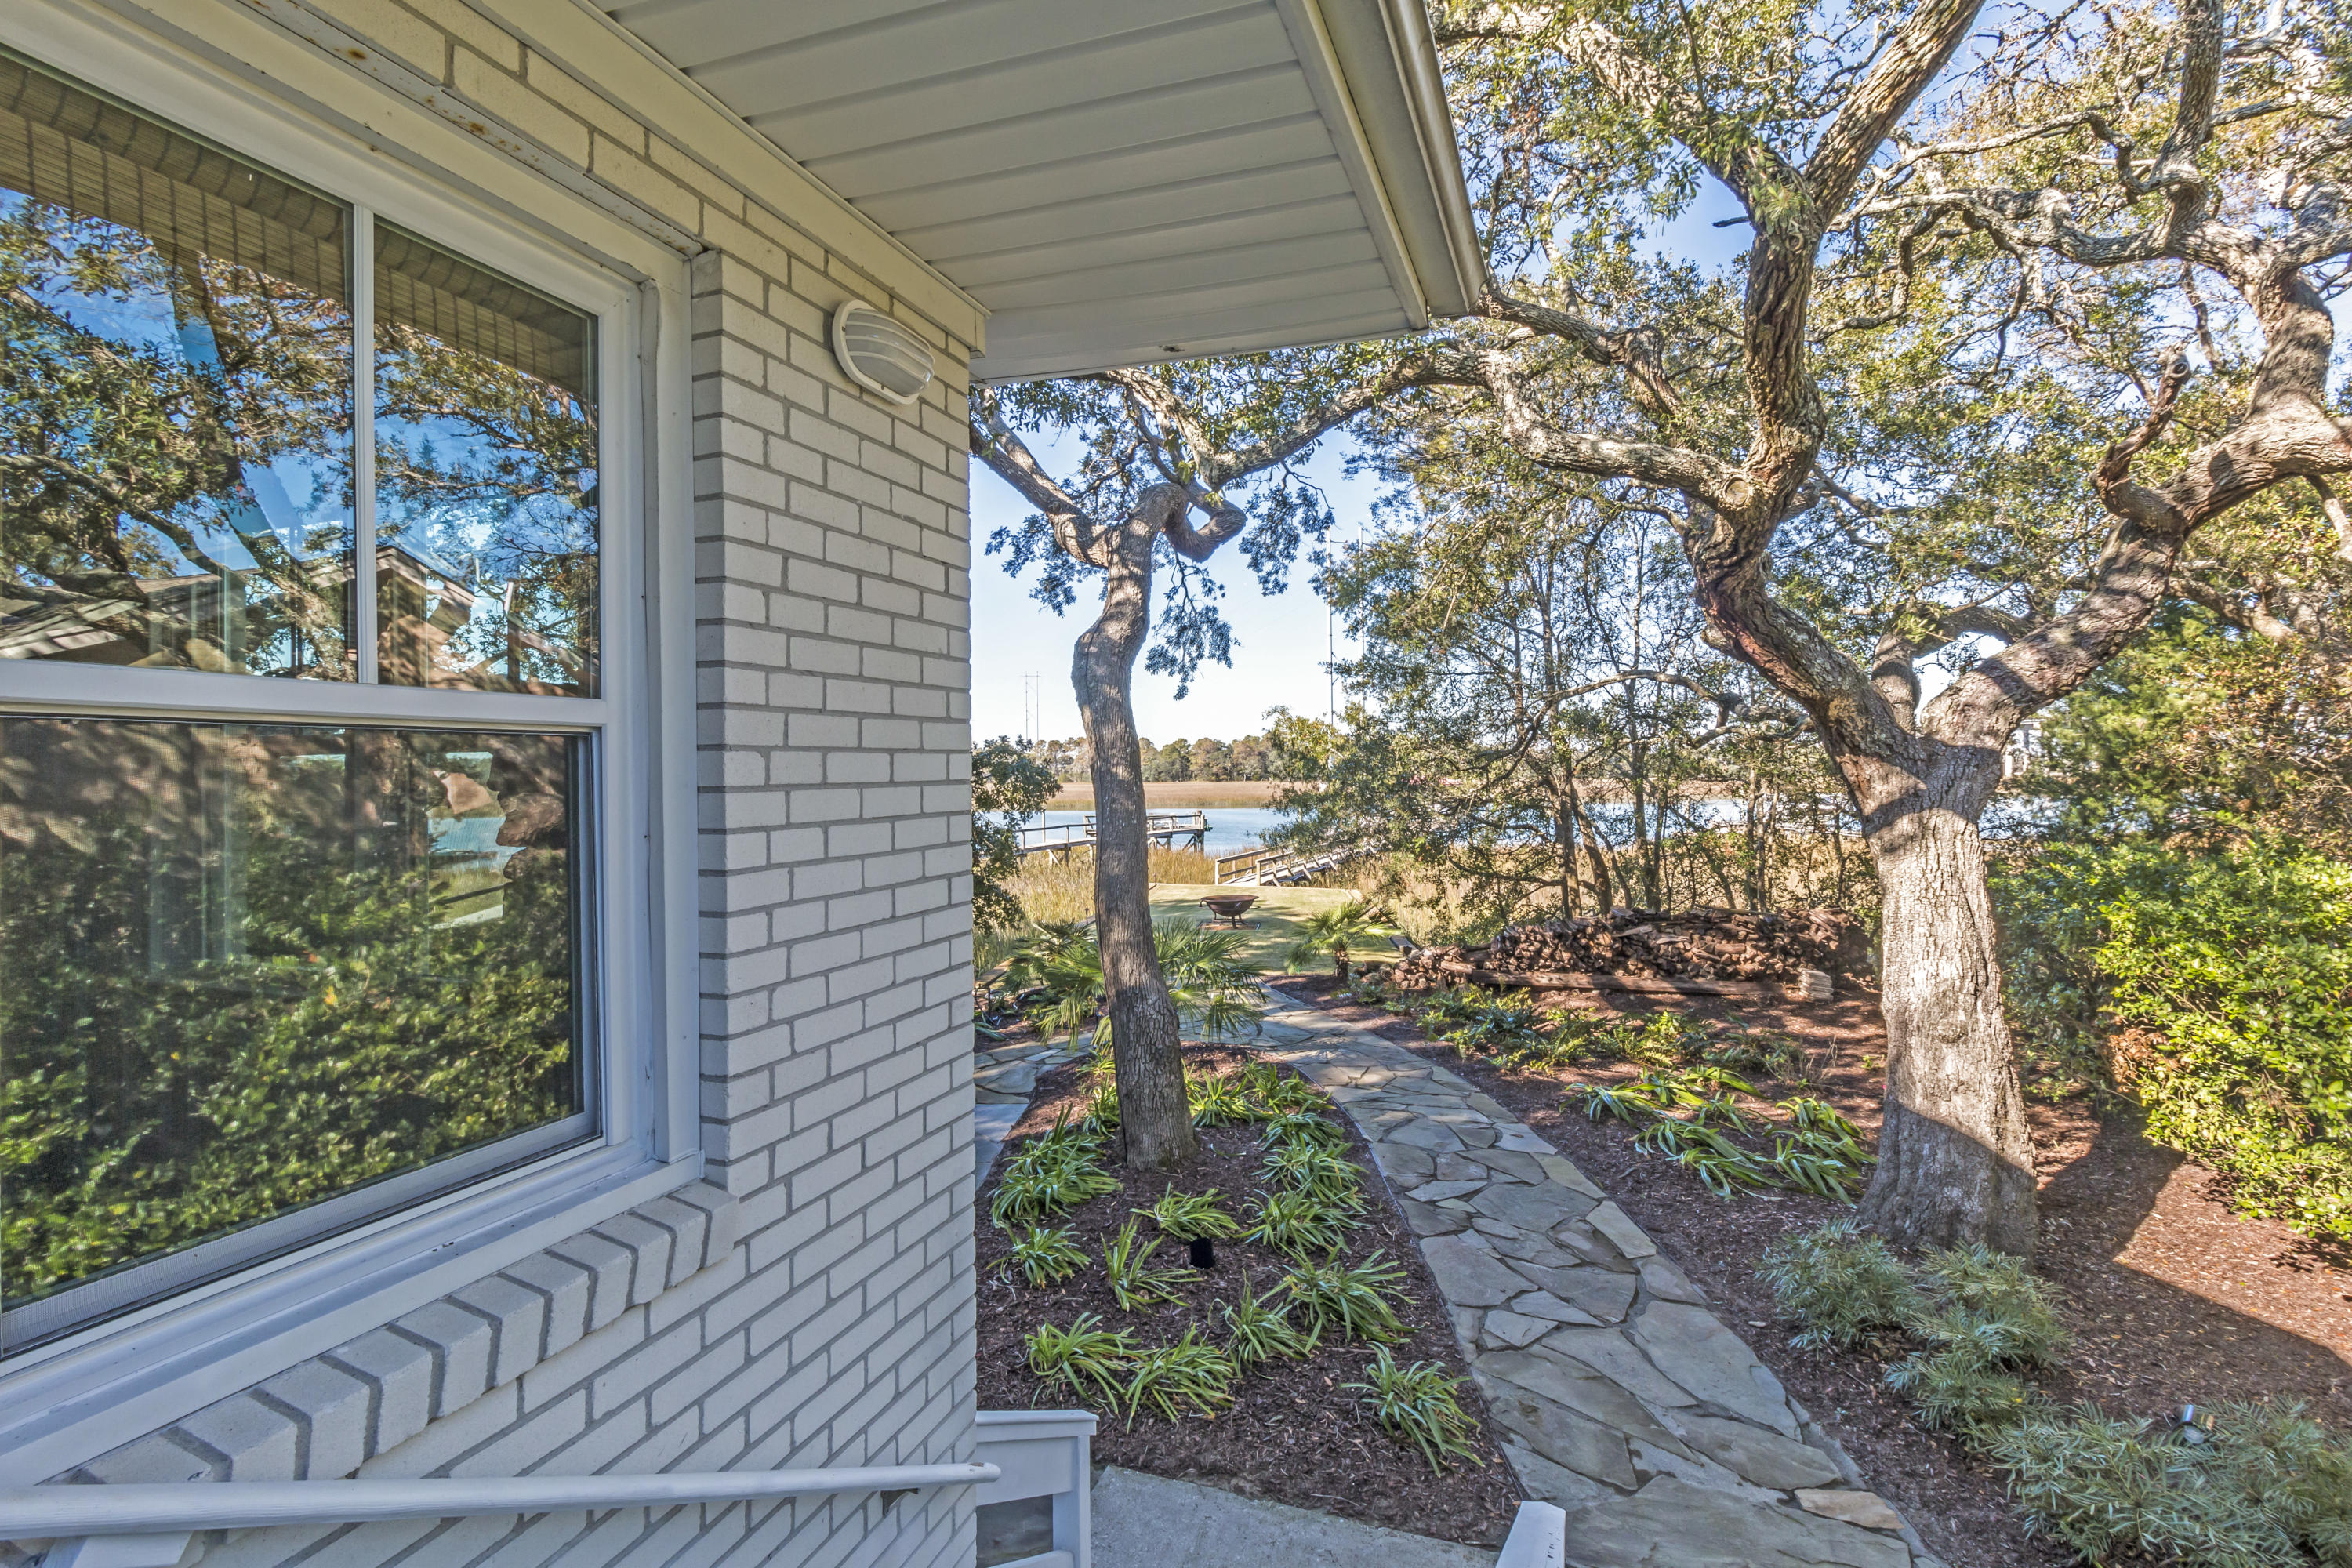 Photo of 1207 Oak Harbor Blvd, Isle of Palms, SC 29451